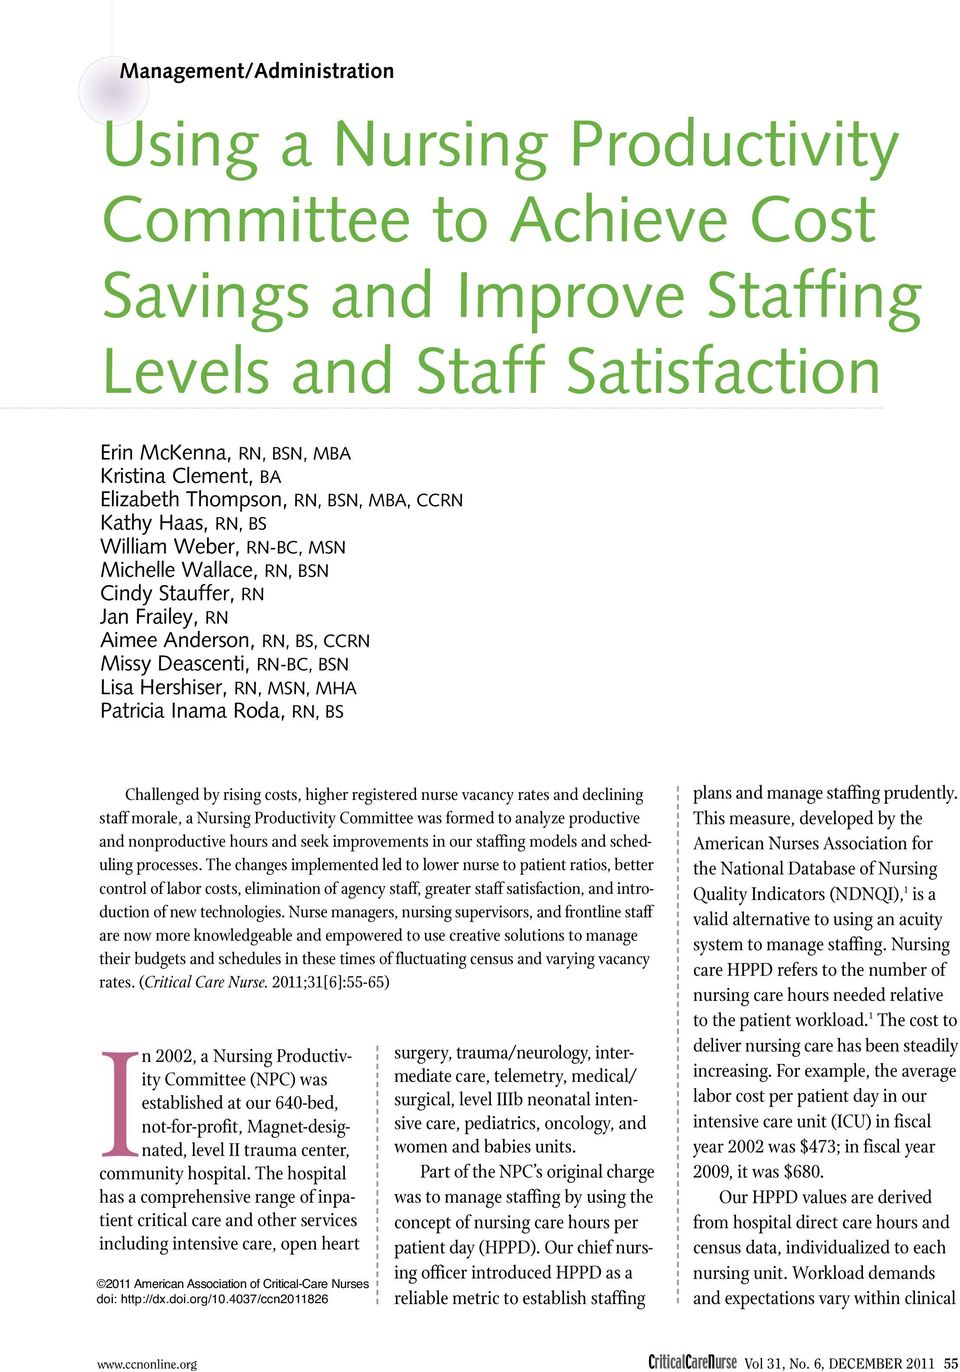 In 2002, a Nursing Productivity  Committee to Achieve Cost Savings